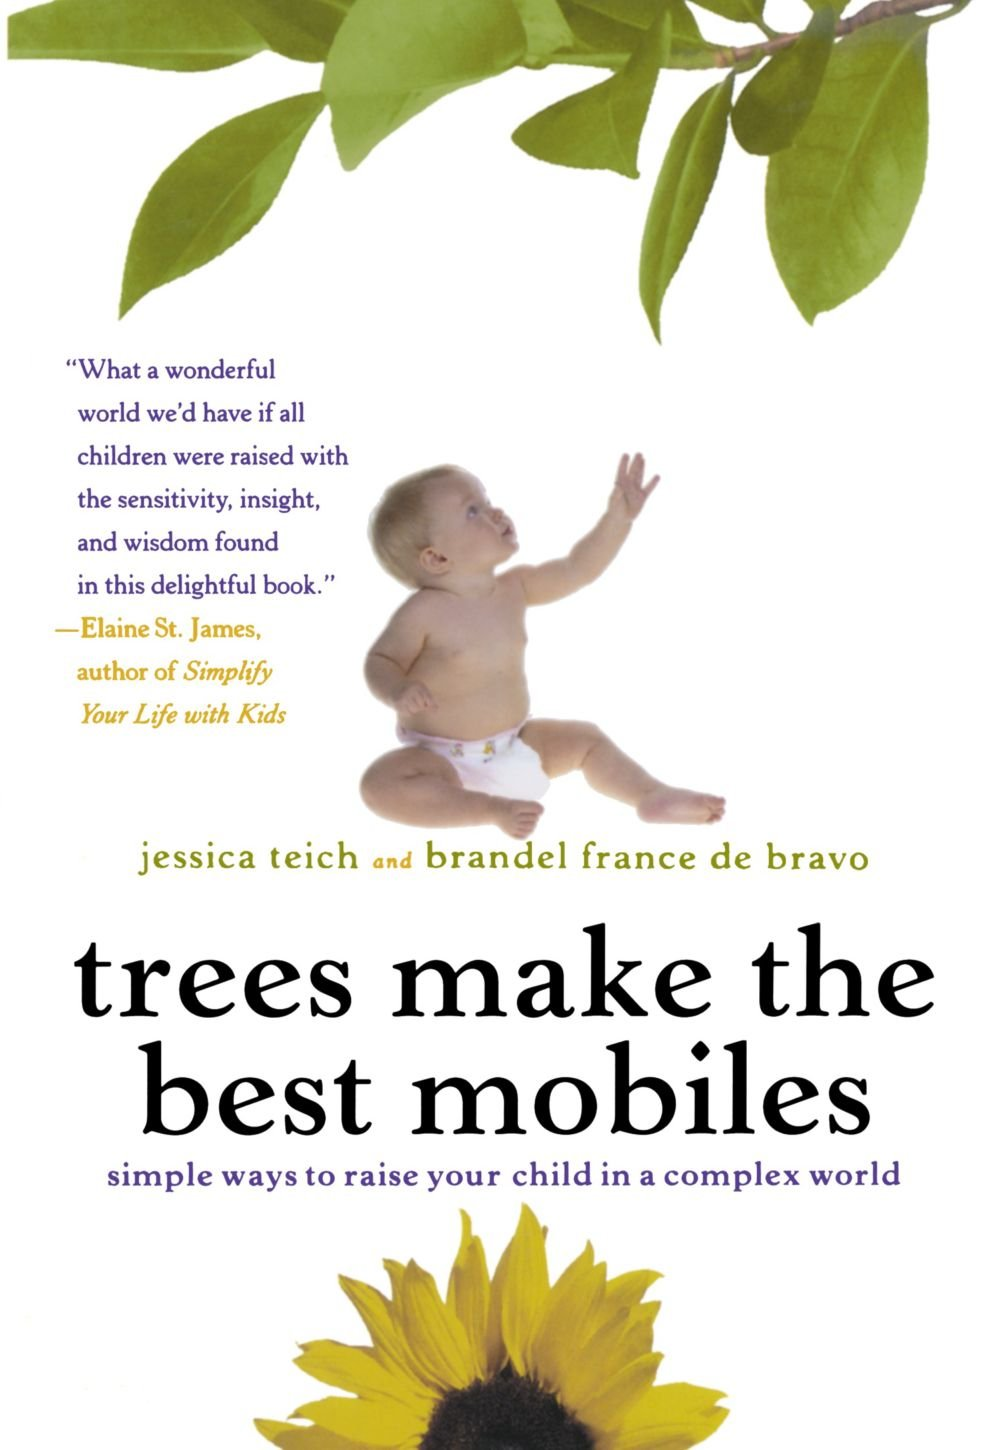 Ange A - Trees Make The Best Mobiles.jpg